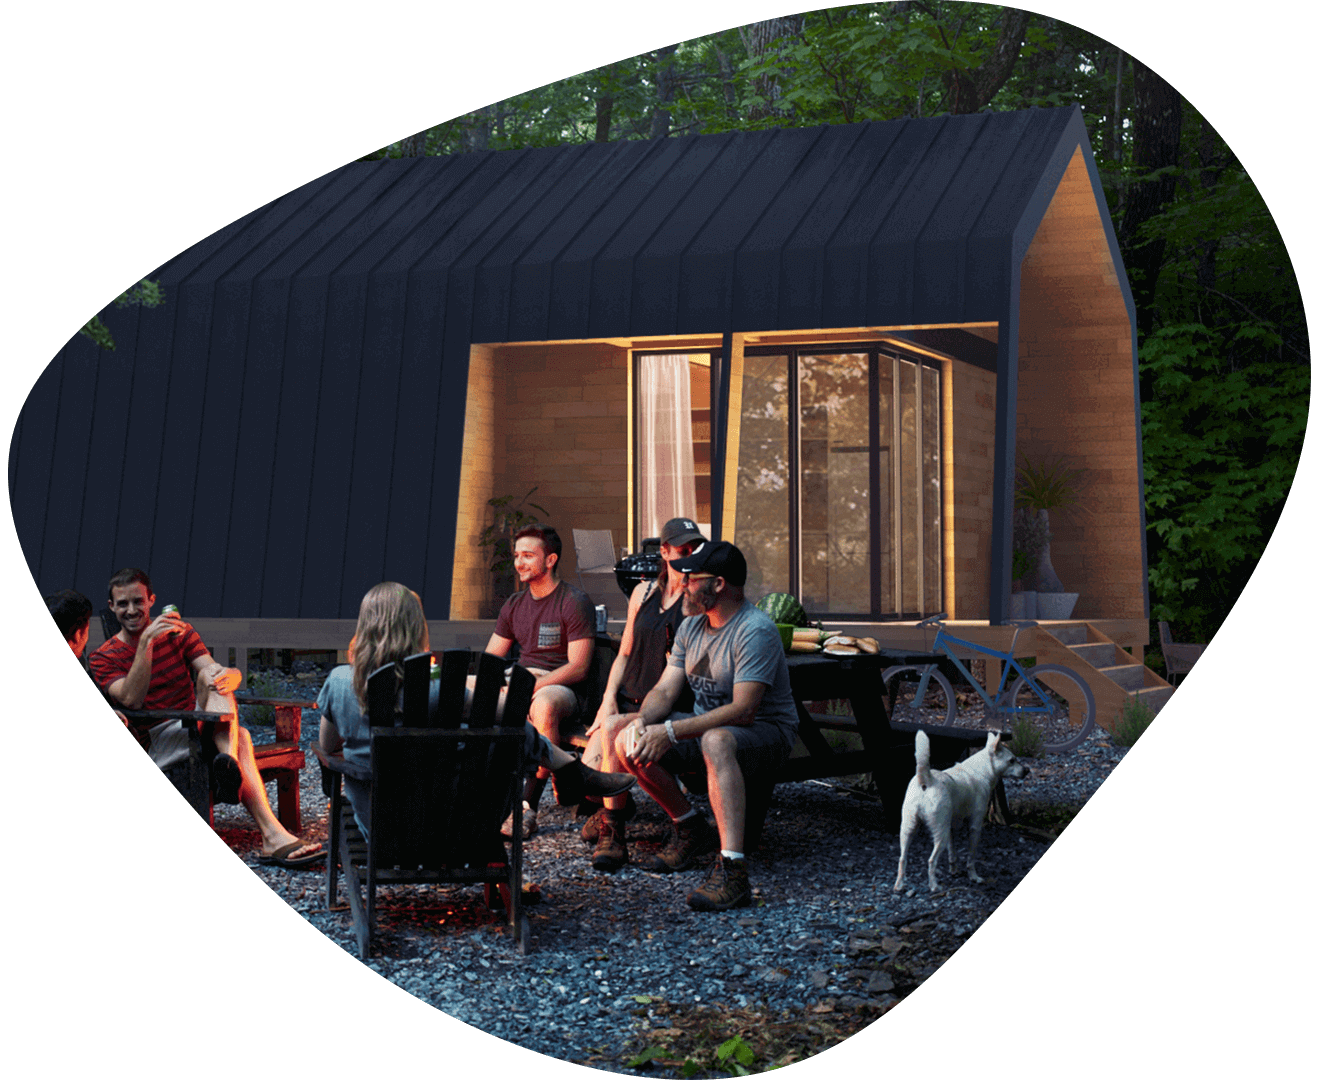 ecokit house visualization in the forest with the friends and the fire